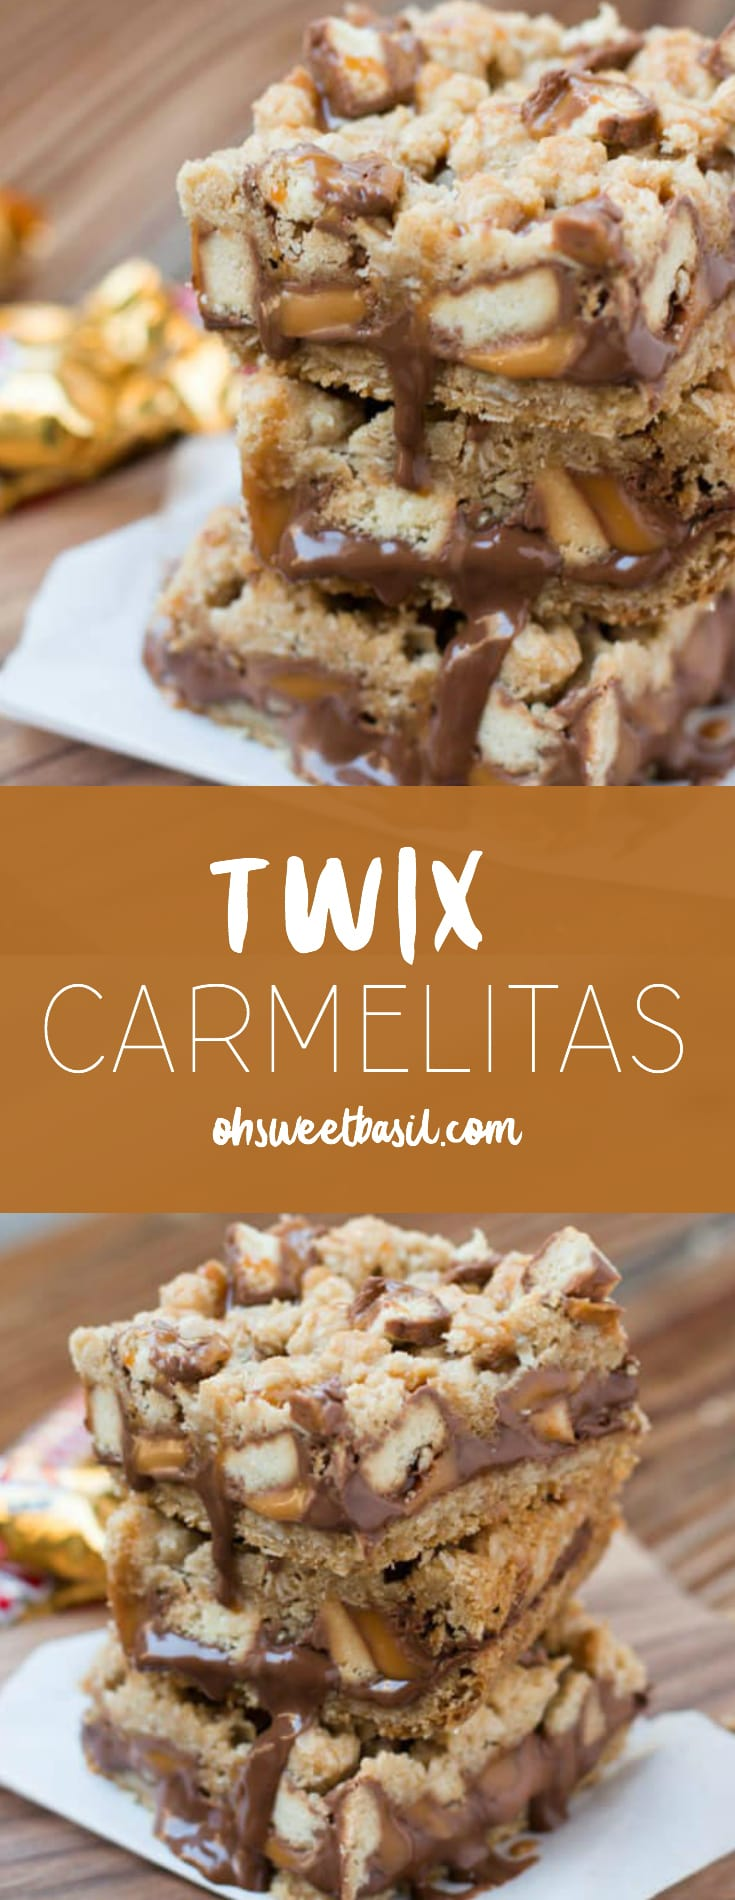 A stack of Twix Carmelitas with chocolate, caramel and chunks of twix candy bars